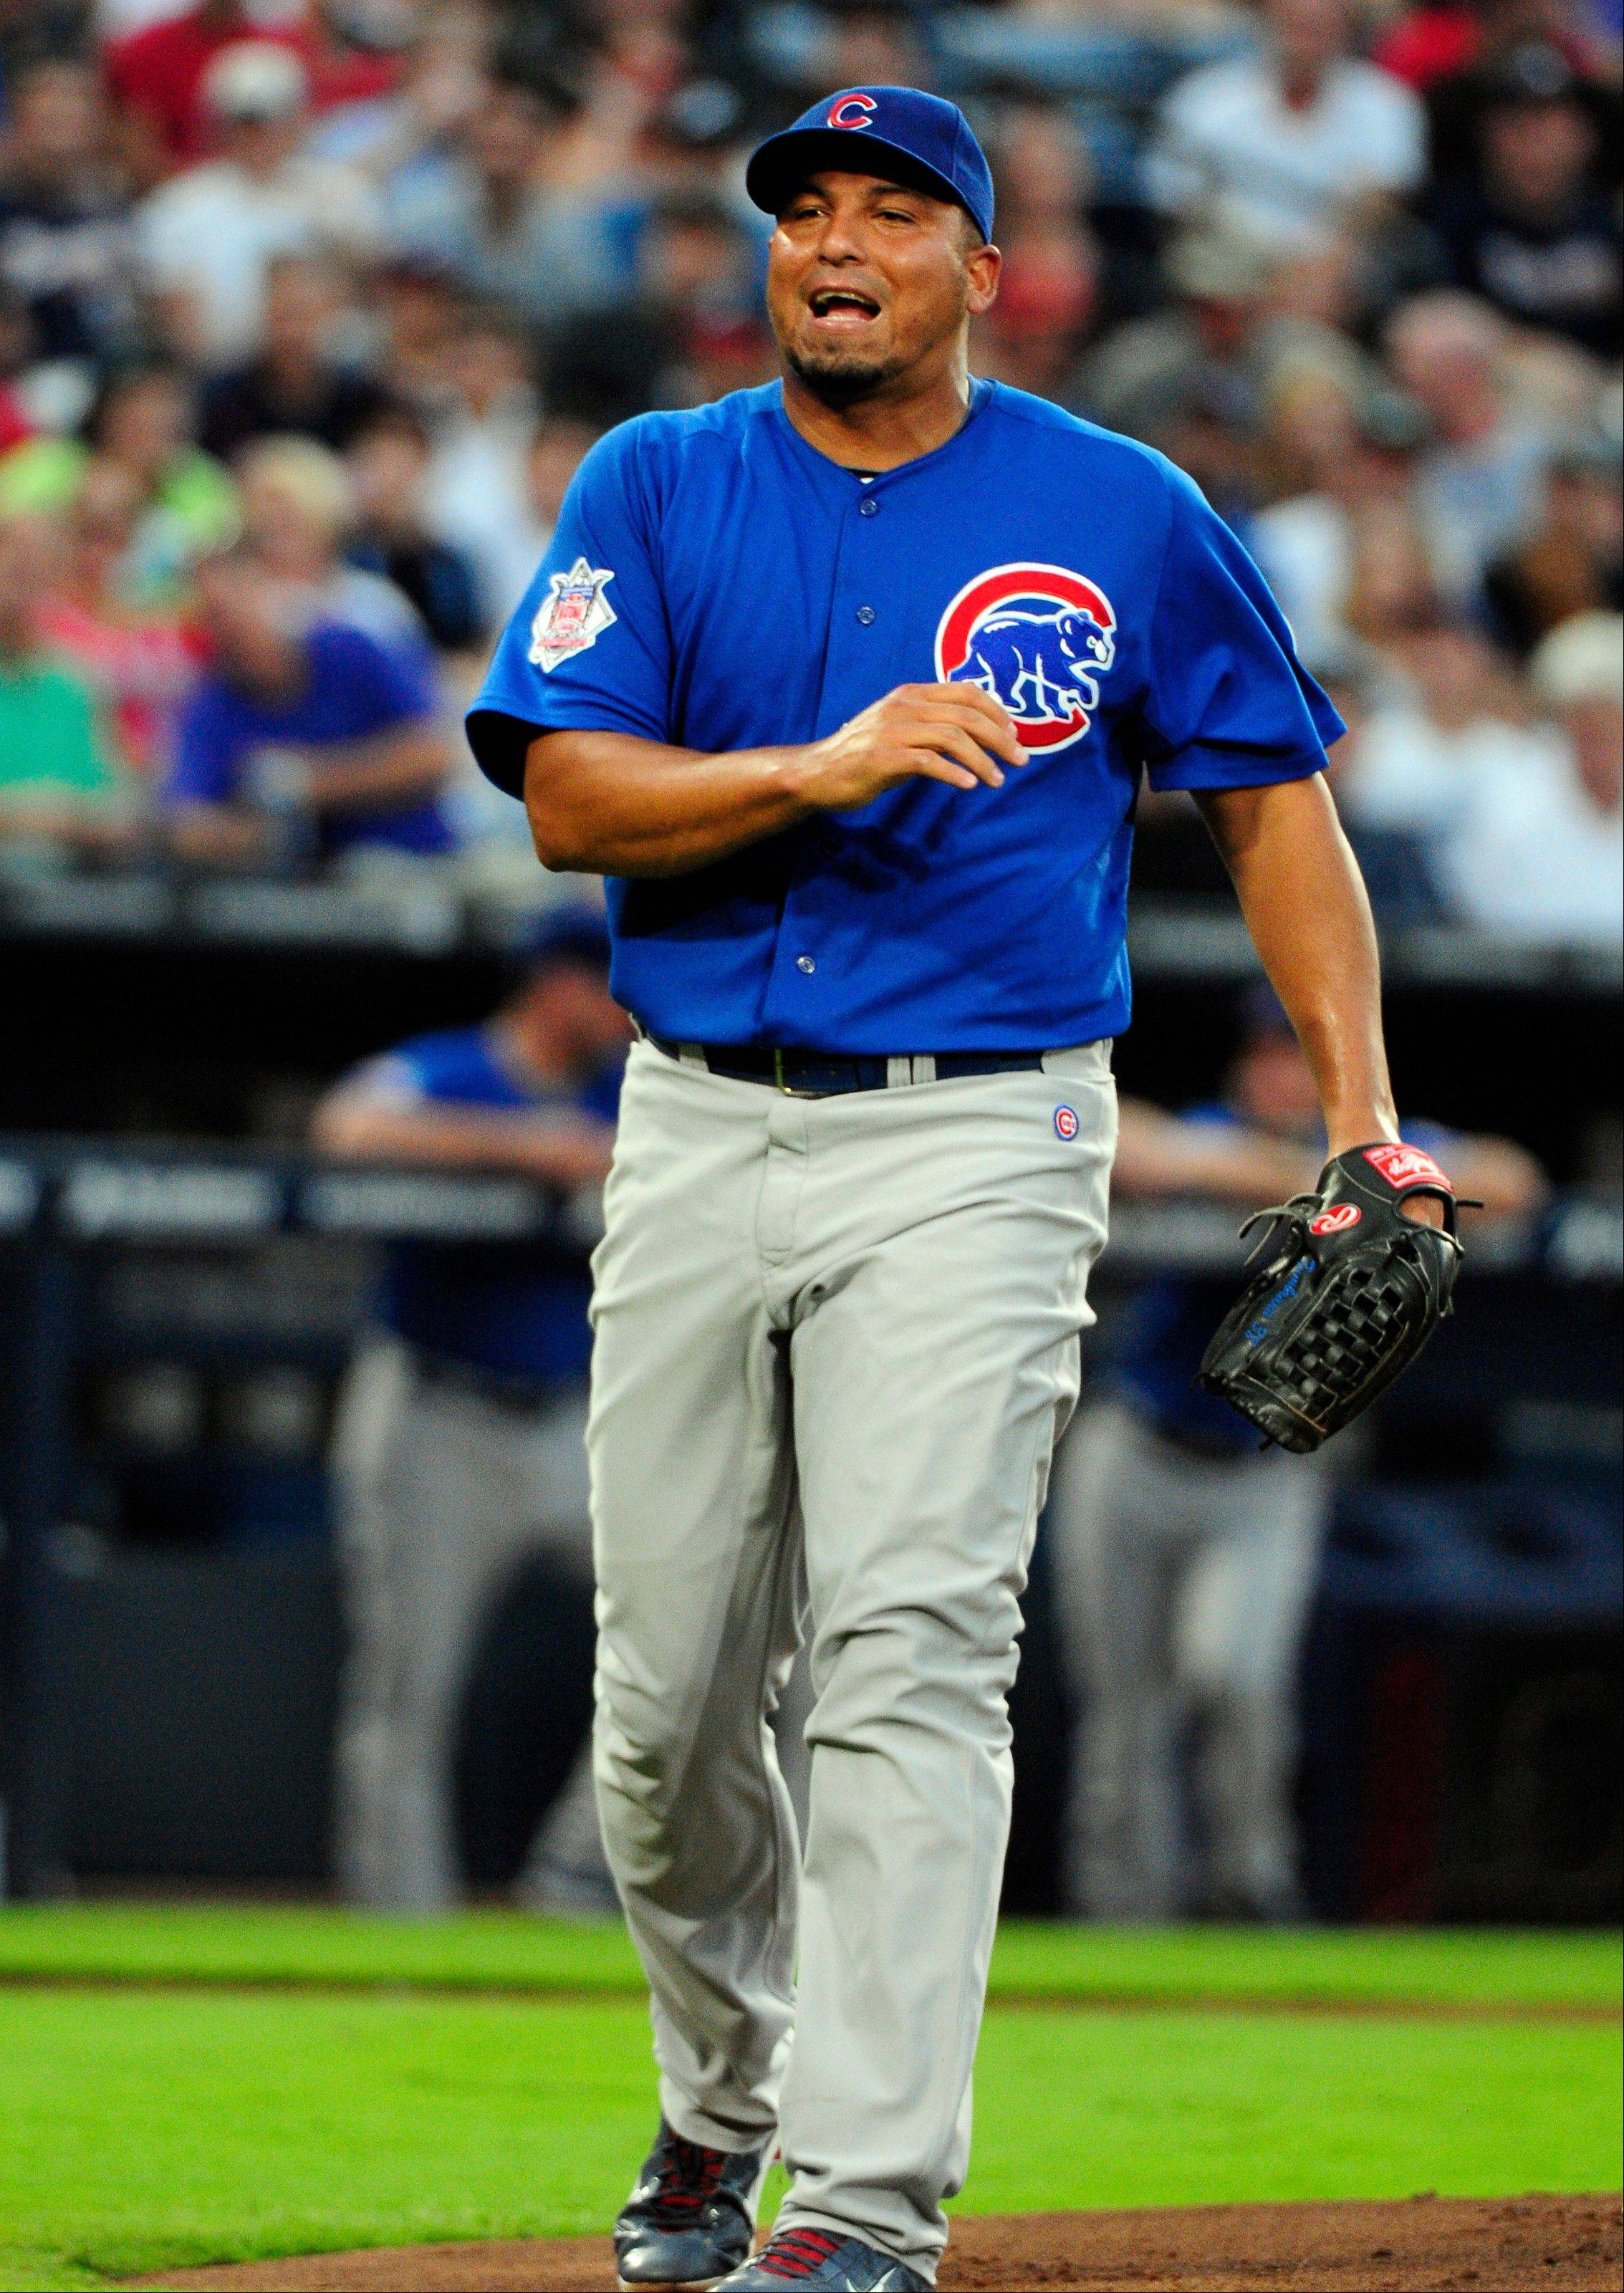 Carlos Zambrano gave up 5 home runs on Friday, then nearly hit Chipper Jones twice. He was then kicked out of the game and threatened to retire.